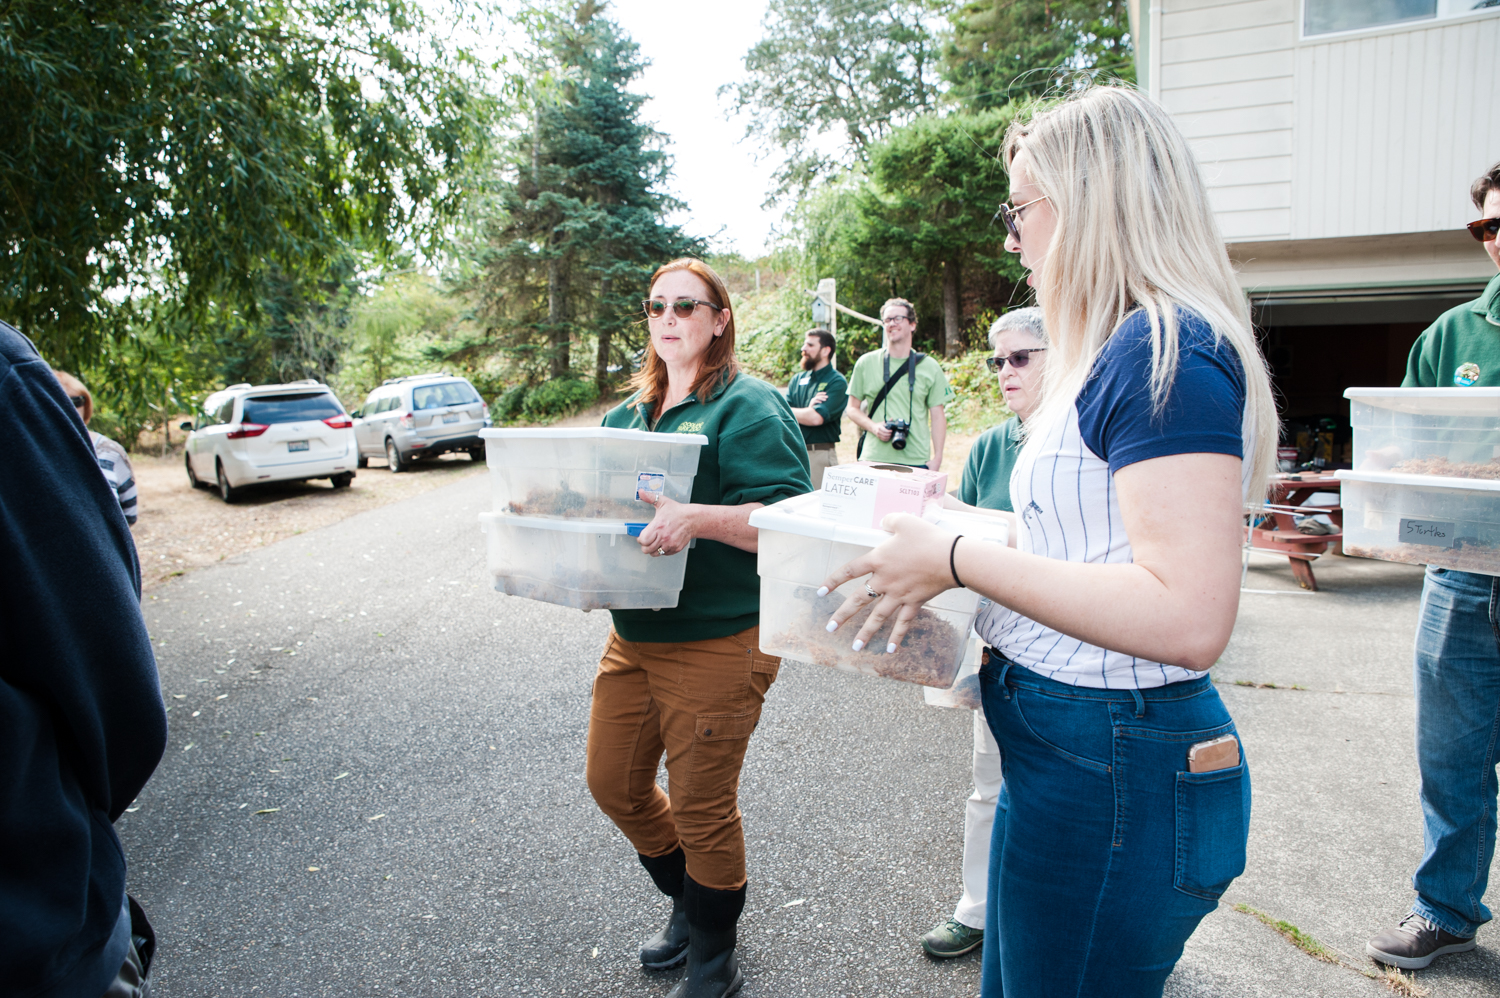 Woodland Park Zoo and Washington Department of Fish and Wildlife will released about 40 juvenile western pond turtles, an endangered species, to a protected recovery site Aug. 9, as part of the{ }Western Pond Turtle Recovery Project, Washington state's longest-running species reintroduction project. Under the recovery project, the turtles were collected from the wild as eggs and are given a head start on life under the care of Woodland Park Zoo; the head start improves their chance of survival in the wild.{ }Recovery efforts over the last 28 years have resulted in more than 2,300 turtles being head started, and surveys indicate that more than 1,000 of the released turtles have survived and continue to thrive at six sites.{ } (Image: Elizabeth Crook / Seattle Refined)